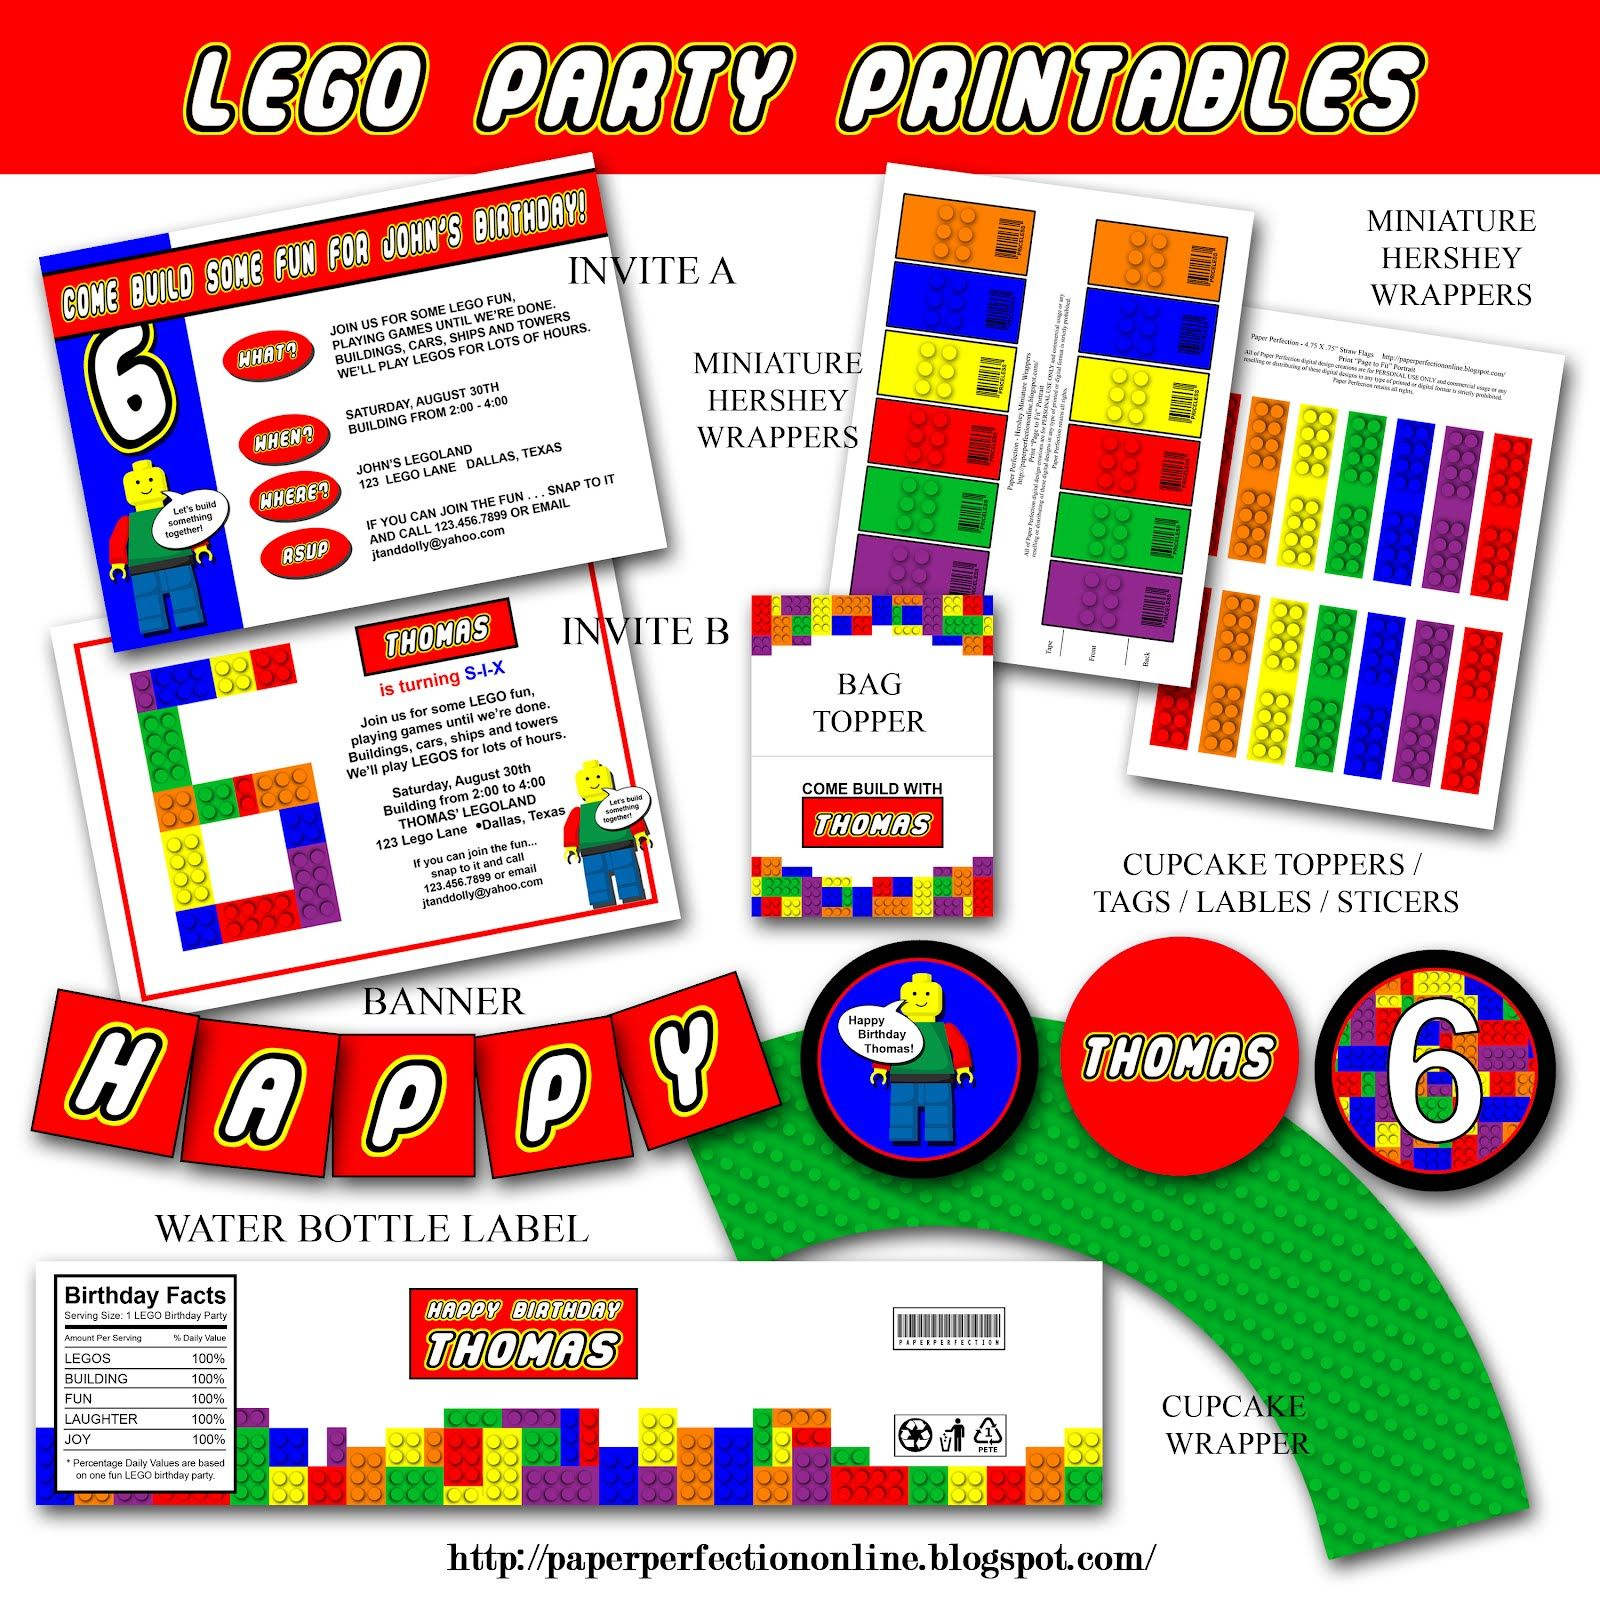 Lego Party Invitations Printable Free Lego Pinterest – Printable Lego Party Invitations